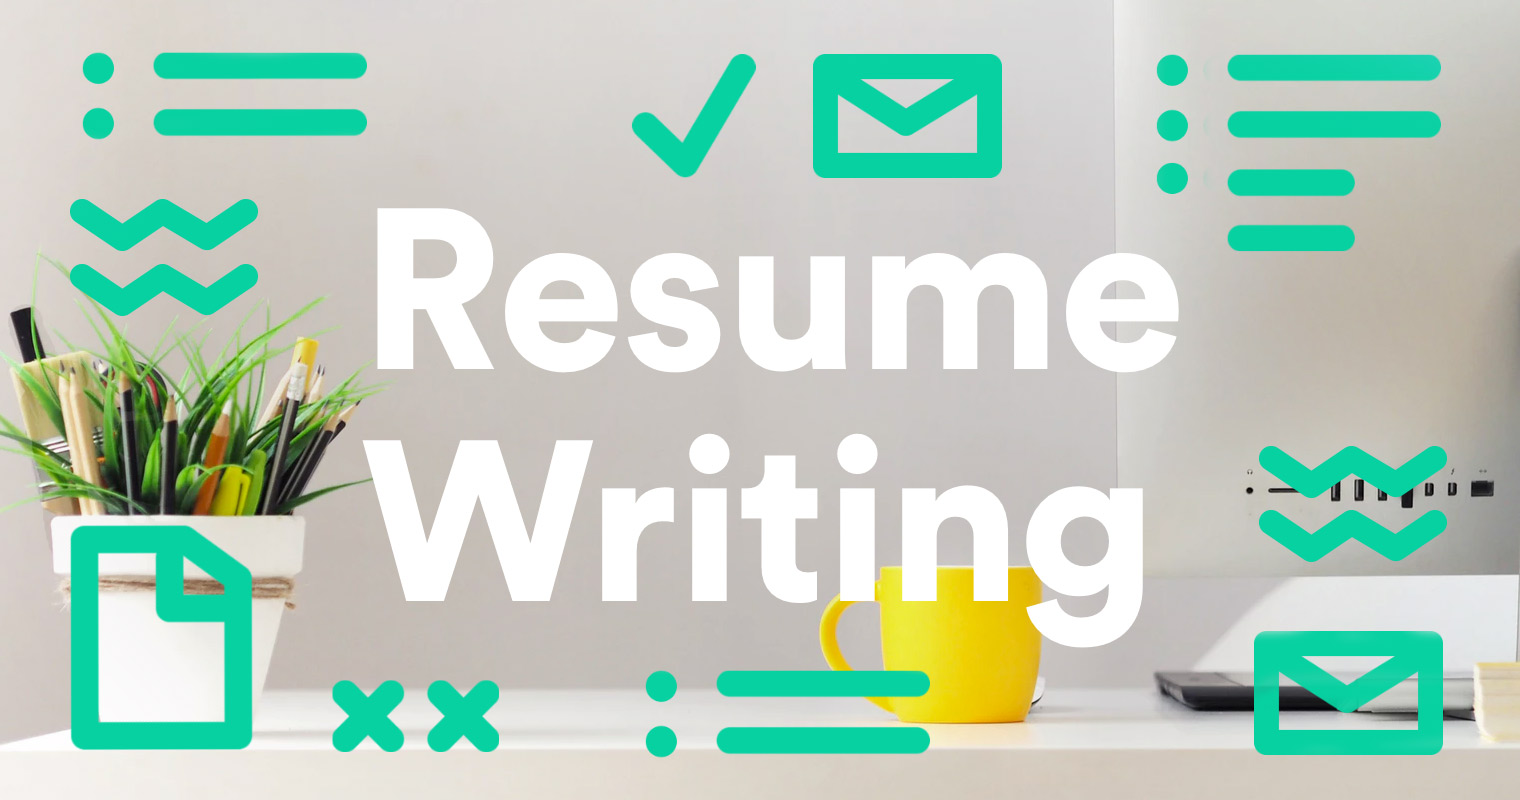 grammarly and glassdoor team up to offer resume writing book unh help best nursing jr Resume Grammarly Resume Writing